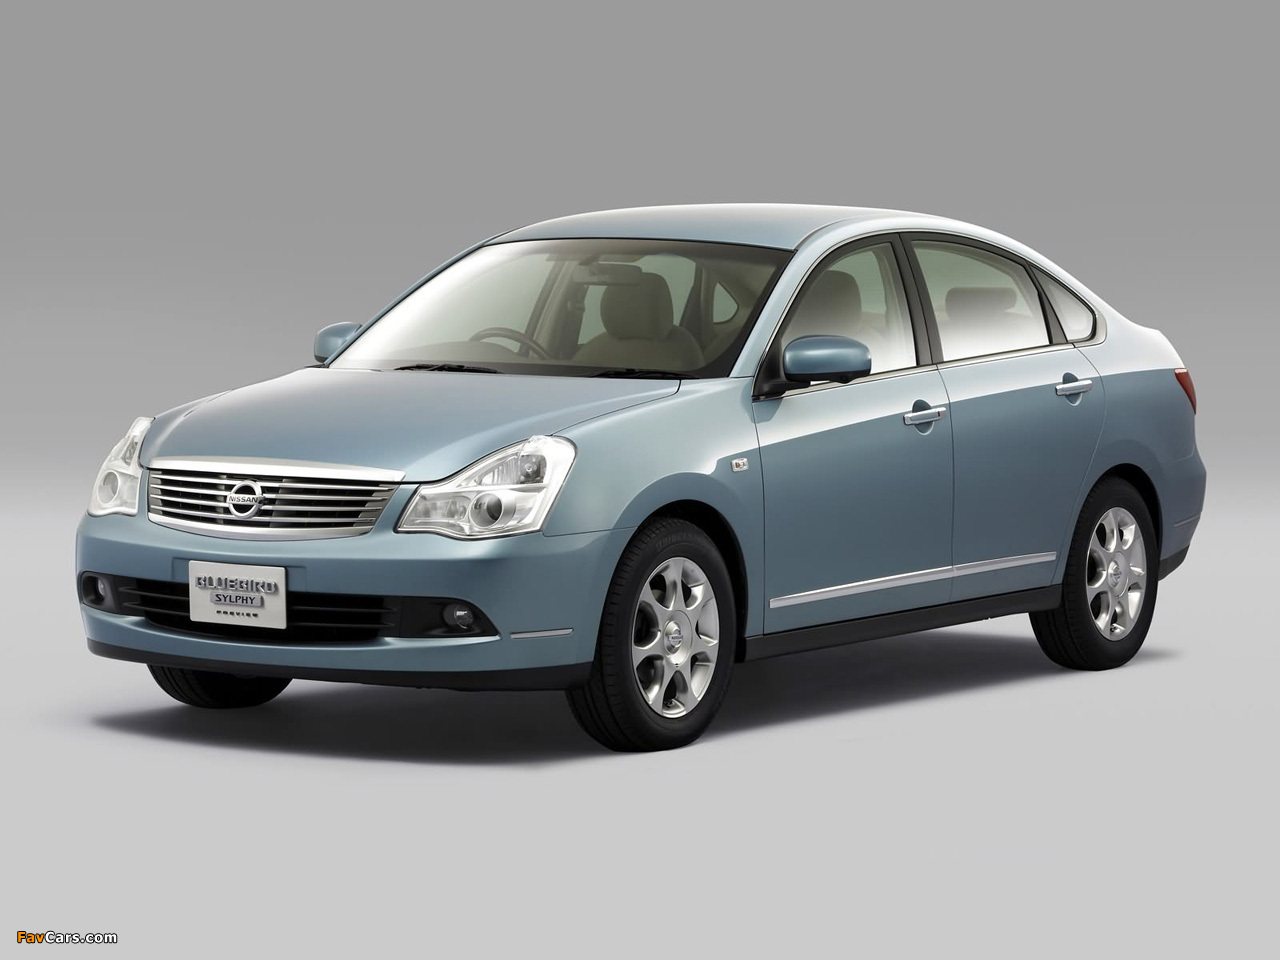 Nissan Bluebird Sylphy (G11) 2005 wallpapers (1280 x 960)